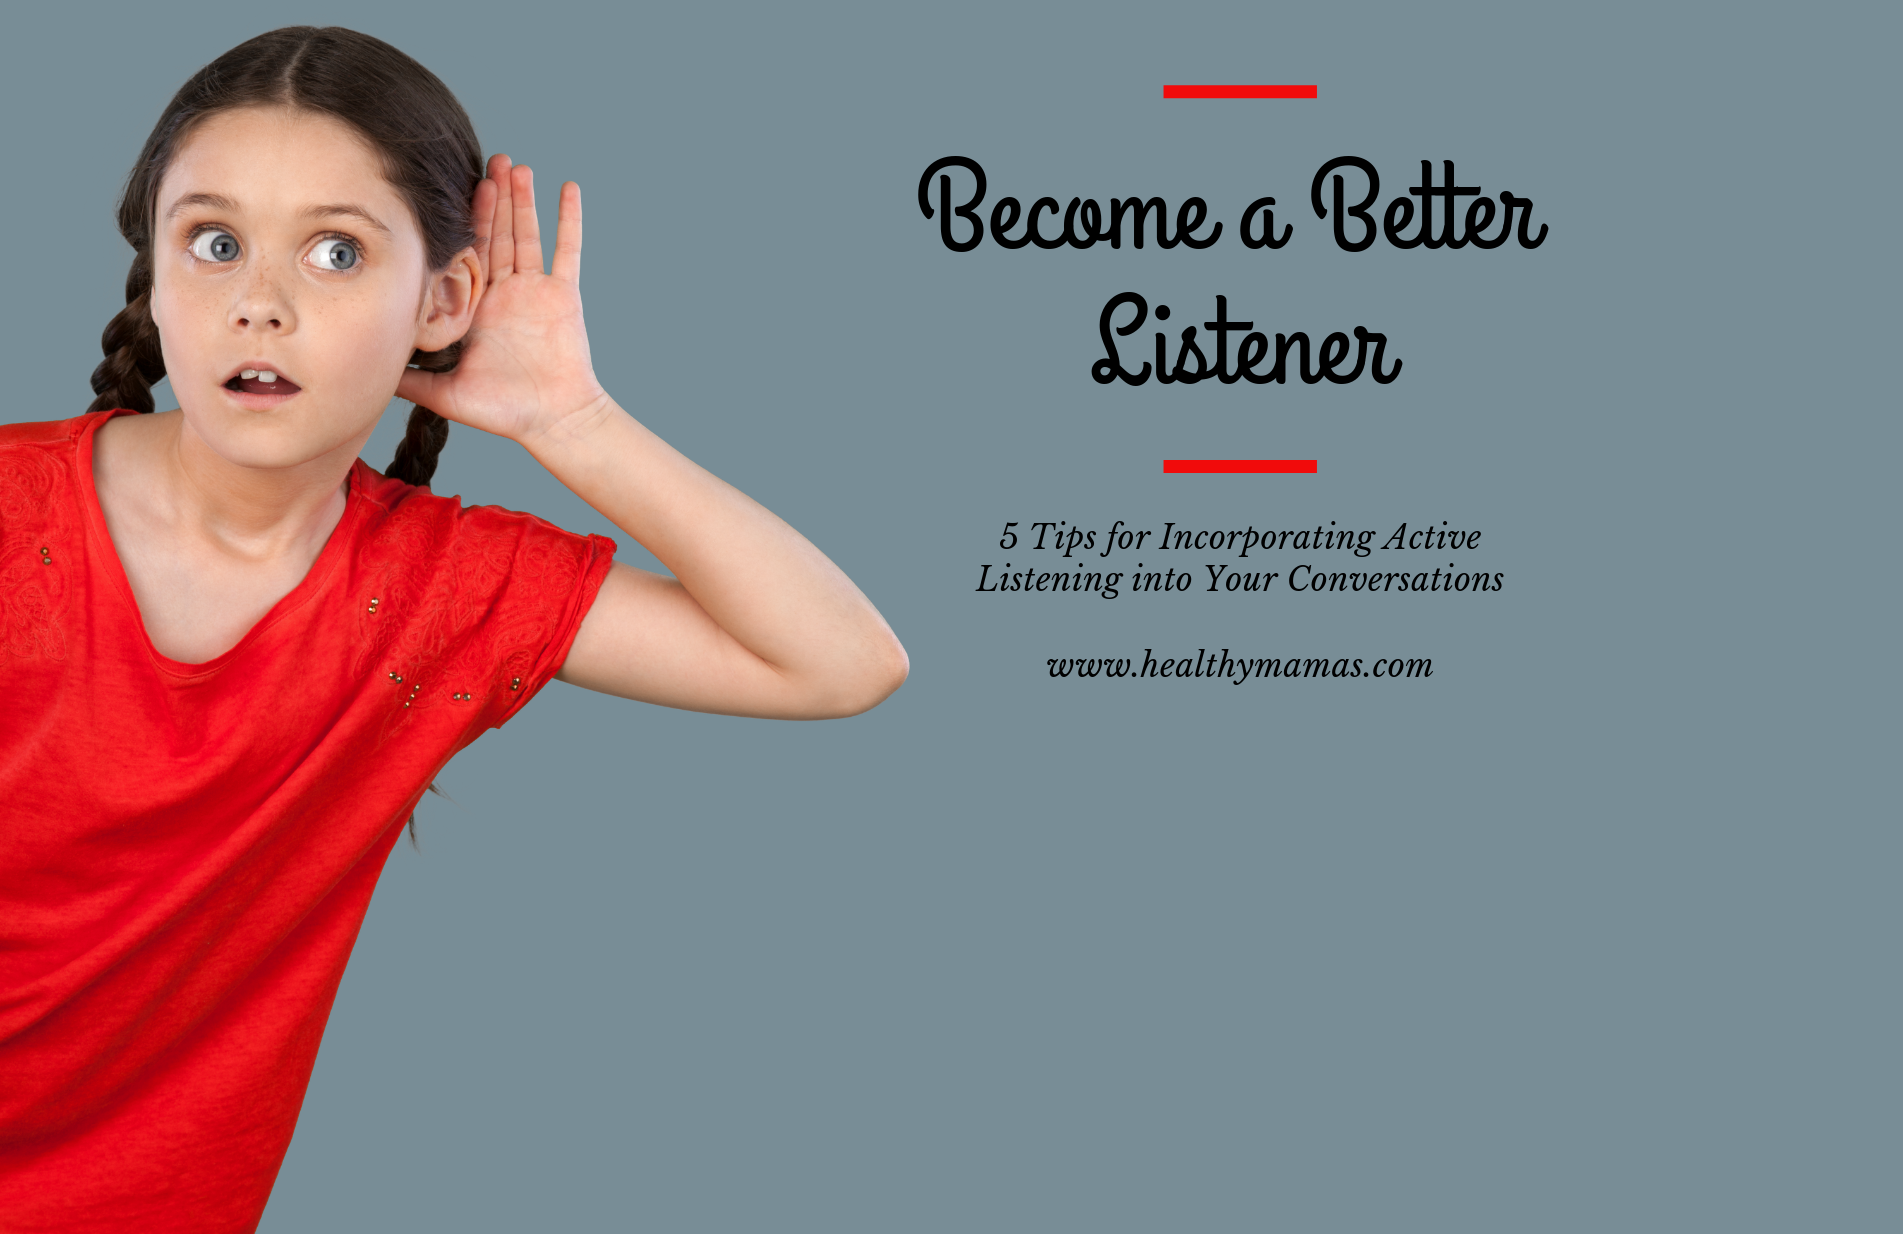 How to Become a Better Listener Through Active Listening